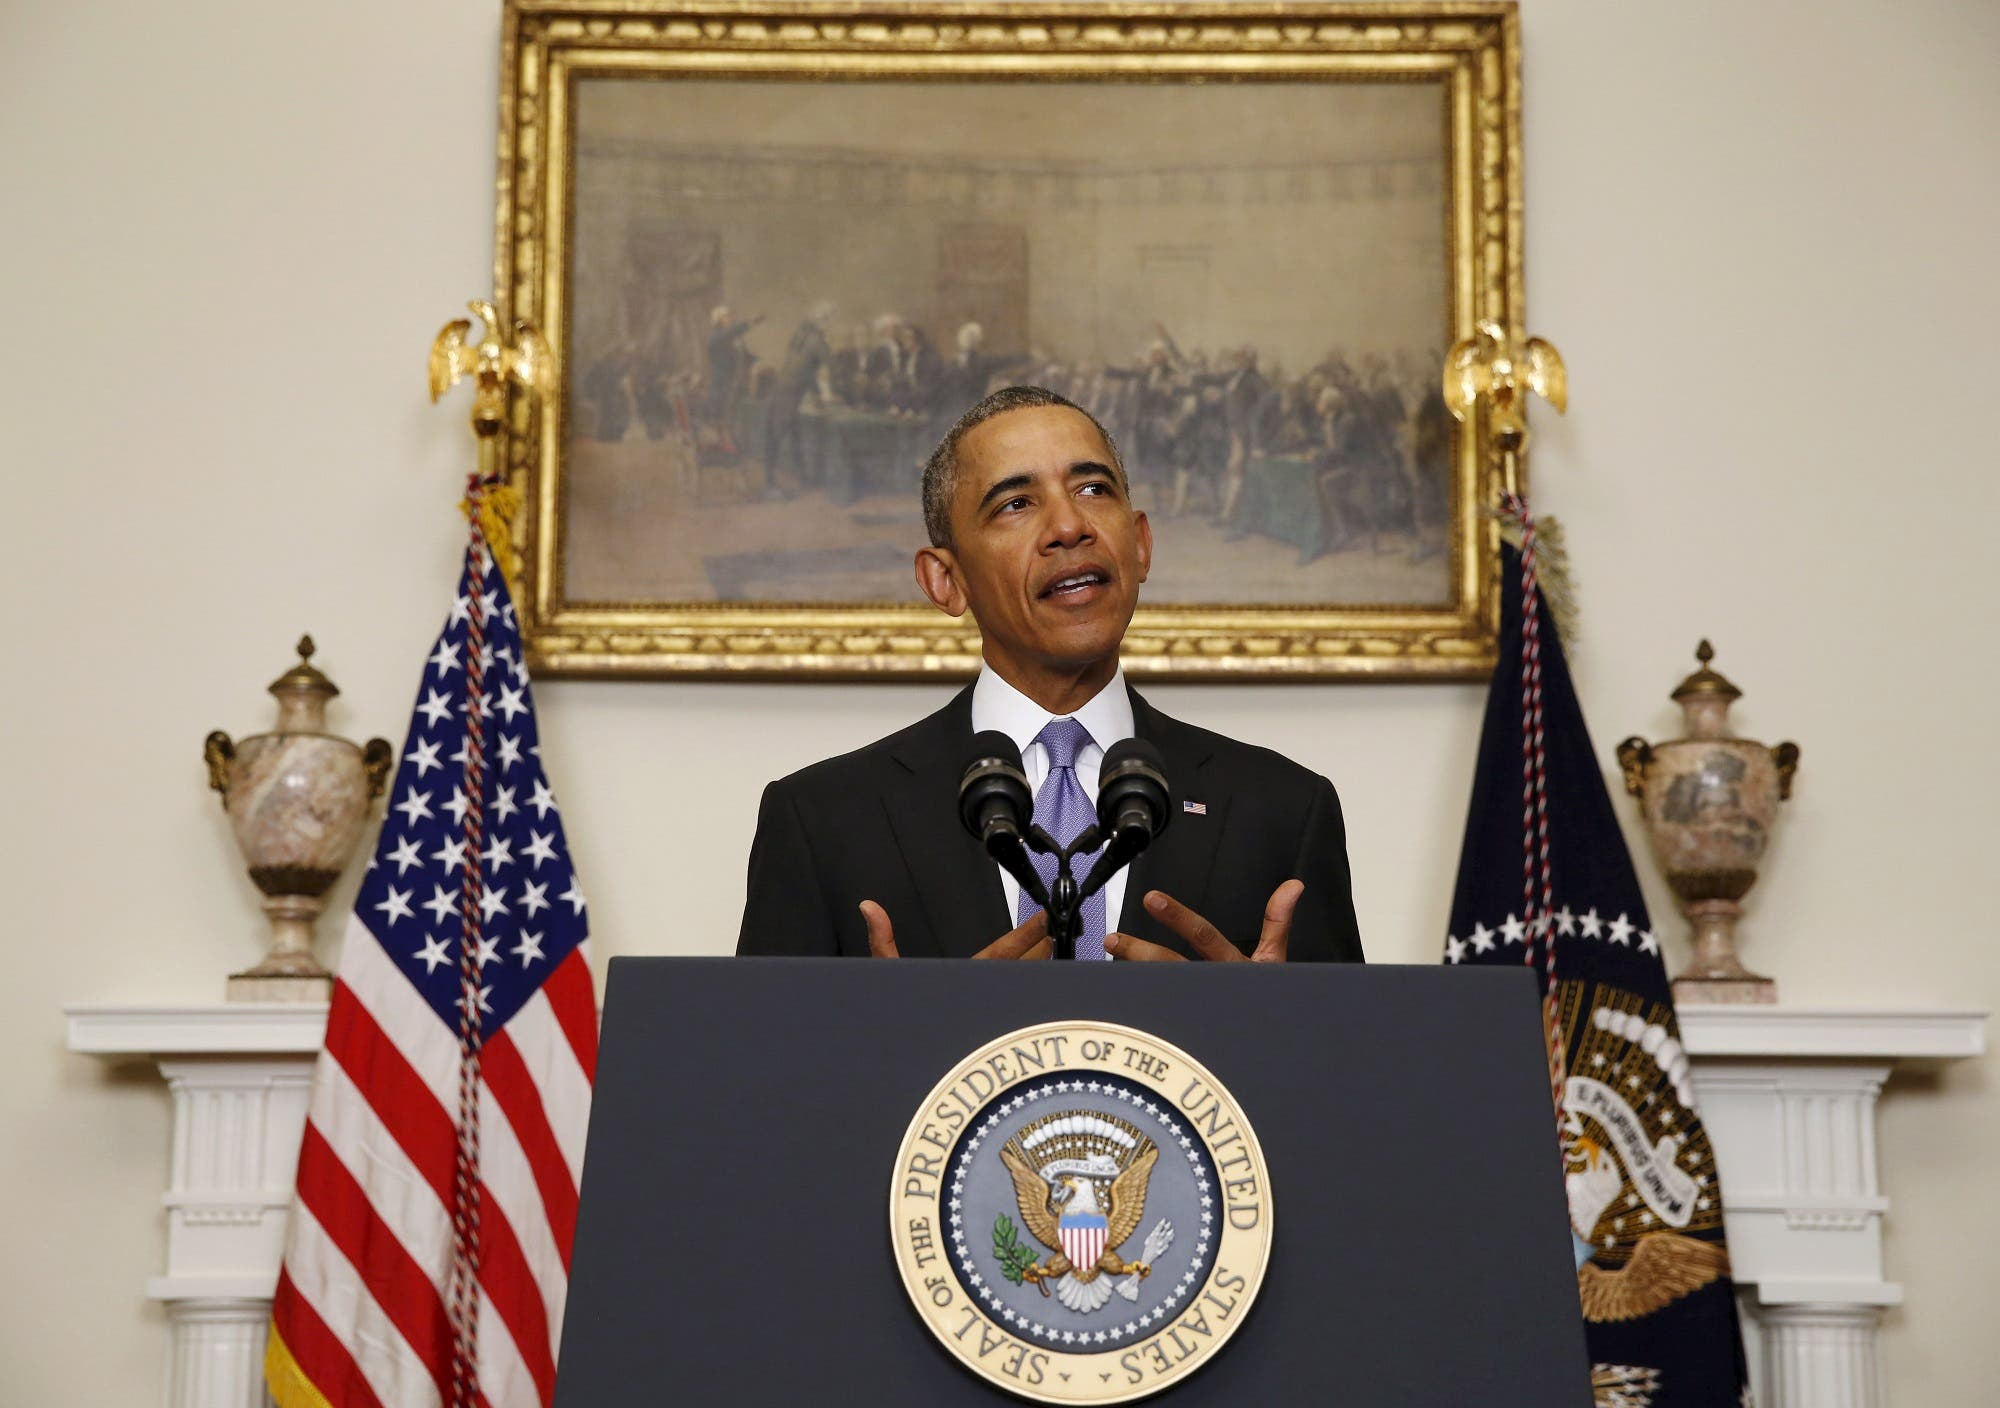 Barack Obama delivers a statement on Iran at the White House in Washington, January 17, 2016. (Reuters)